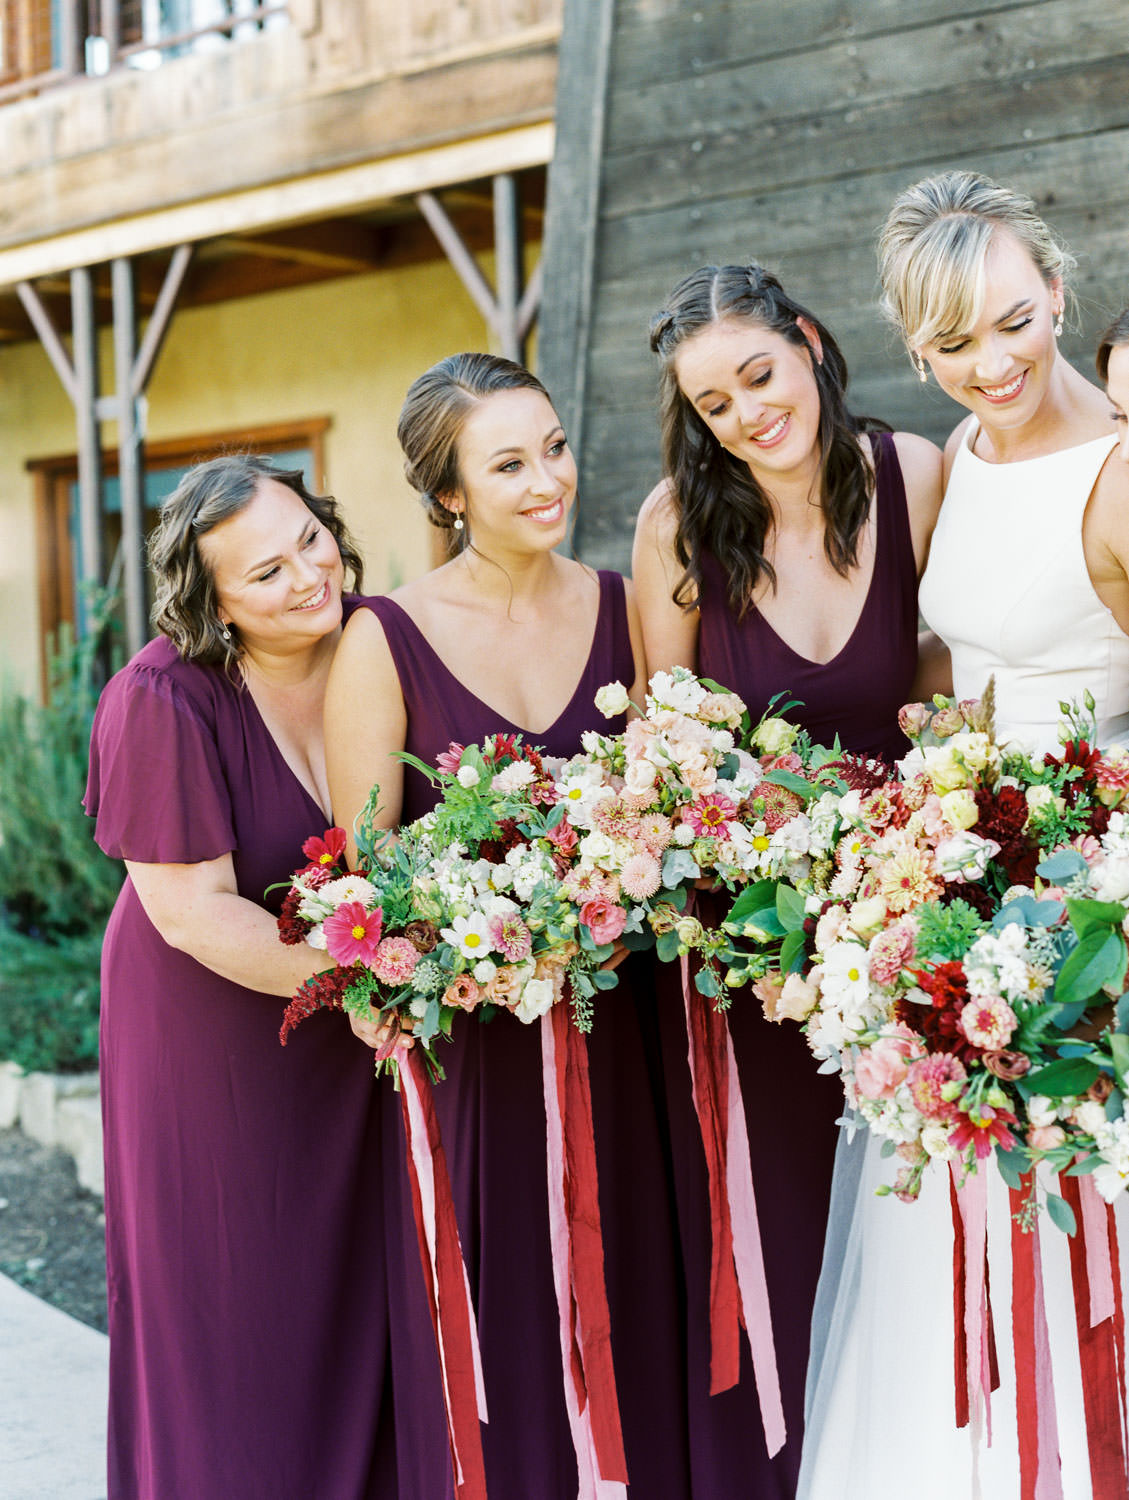 Bridesmaids in deep wine gowns by Show Me Your Mumu with bouquets of ivory, peach, wine, blush flowers and mauve, wine, and blush ribbons. Bridal party portrait with the bride. Full Belly Farm on Martha Stewart Weddings by film photographer Cavin Elizabeth Photography